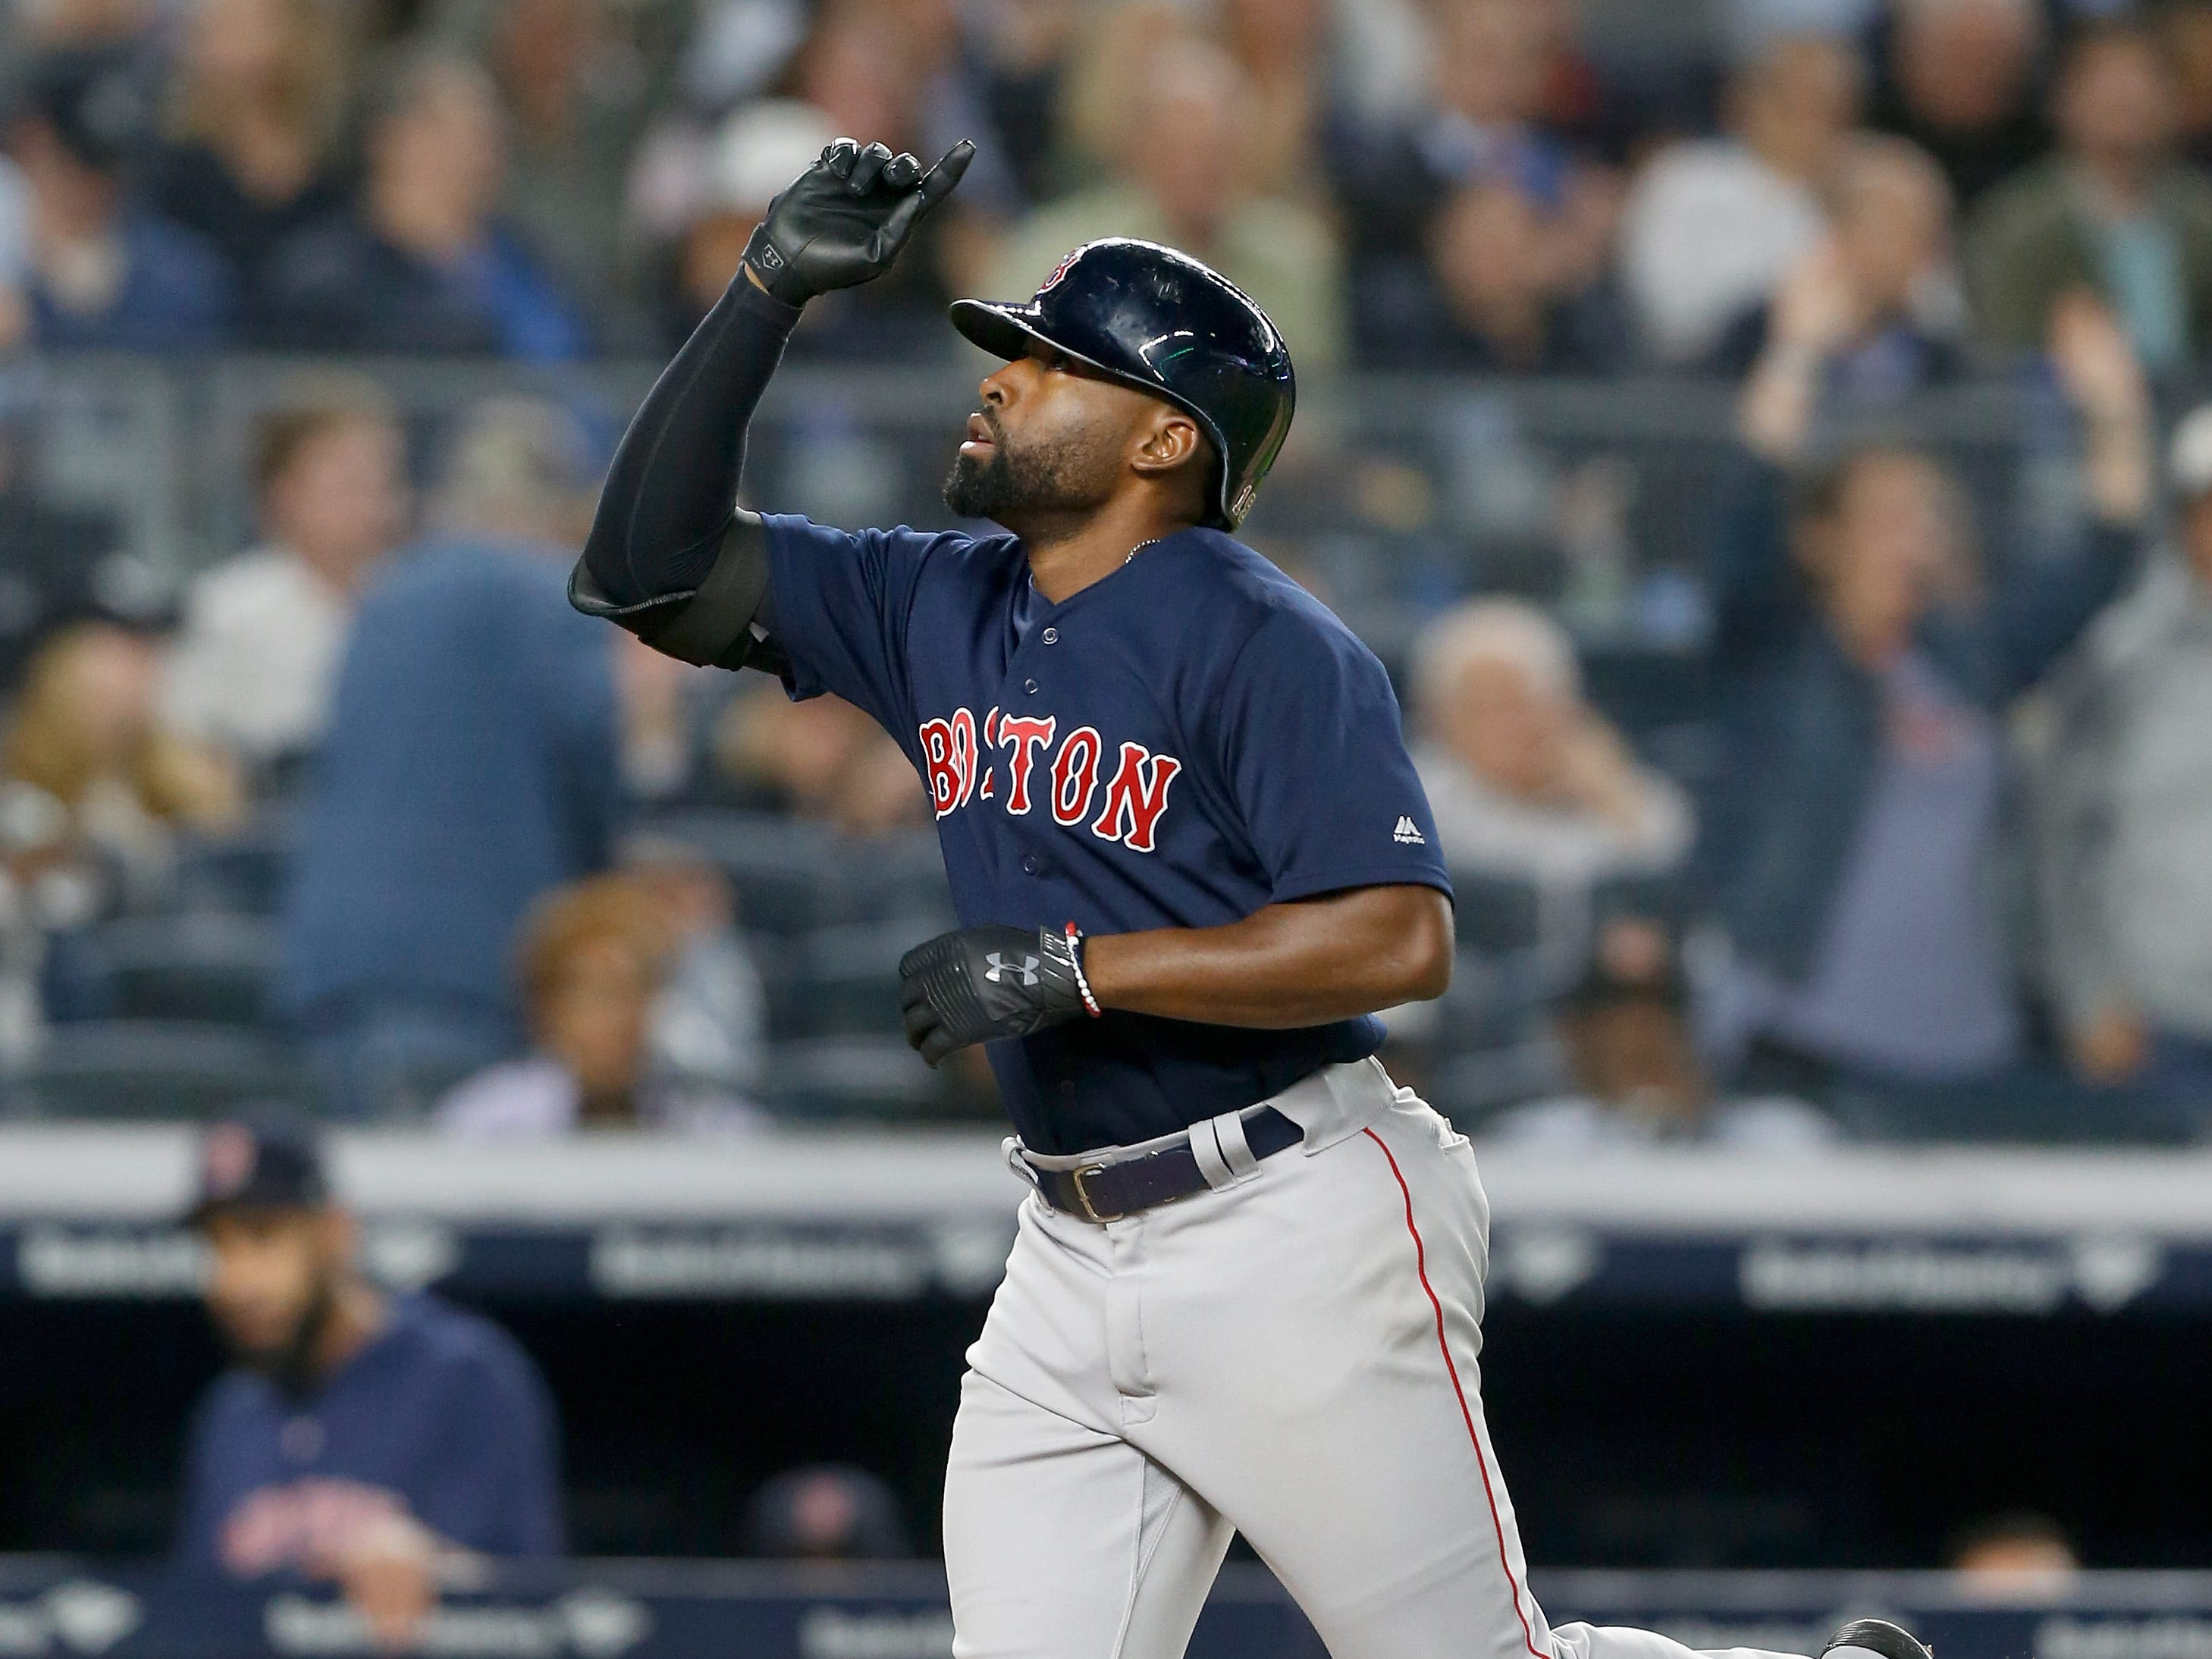 Jackie Bradley Jr. rounds the bases after a seventh inning home run.